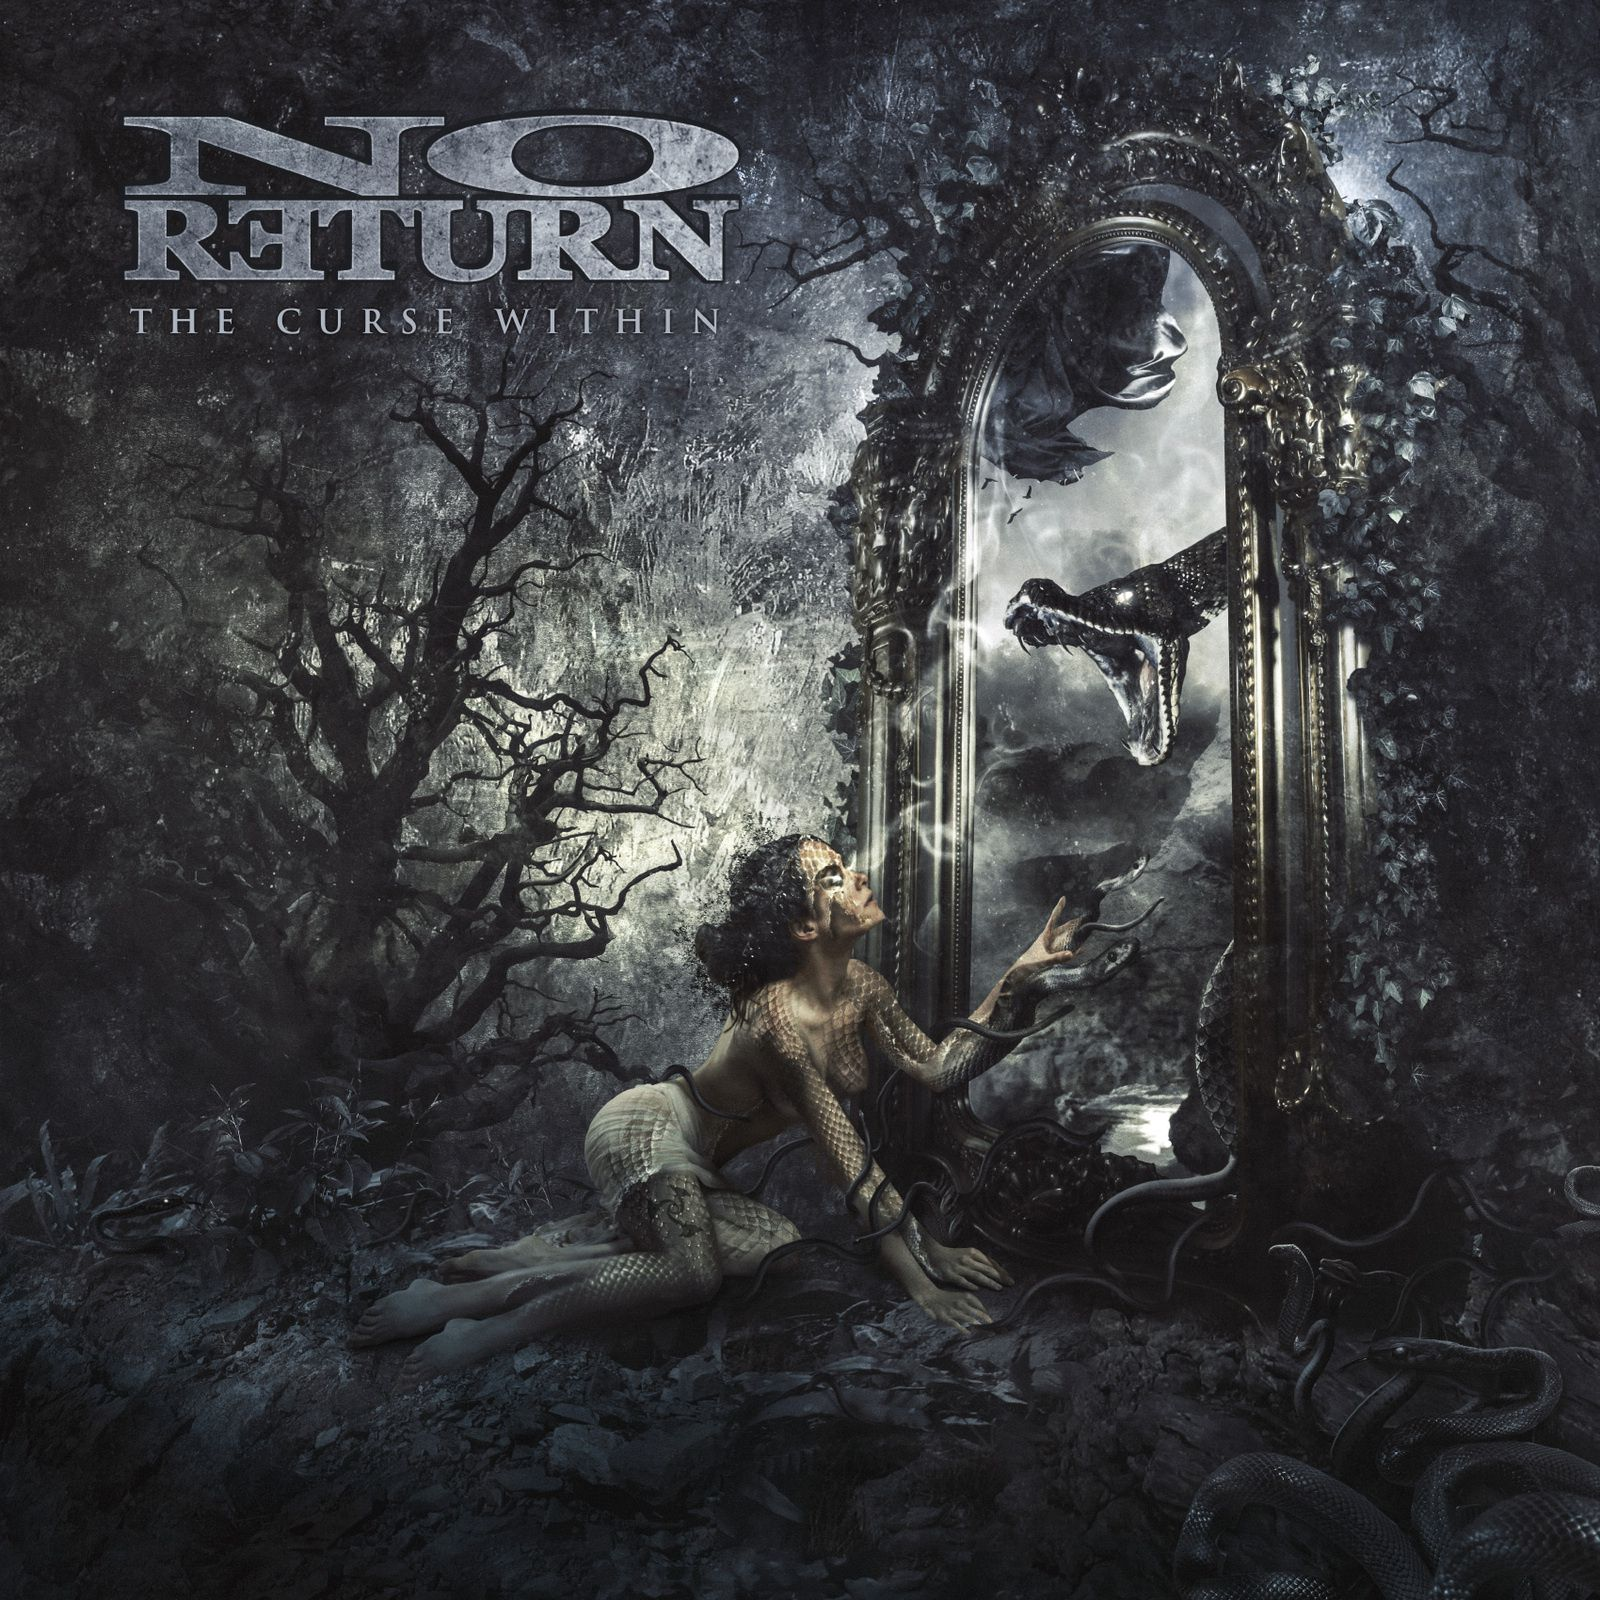 Nouvelle interview avec Alain Clement pour le nouvel album de NO RETURN The Curse Within